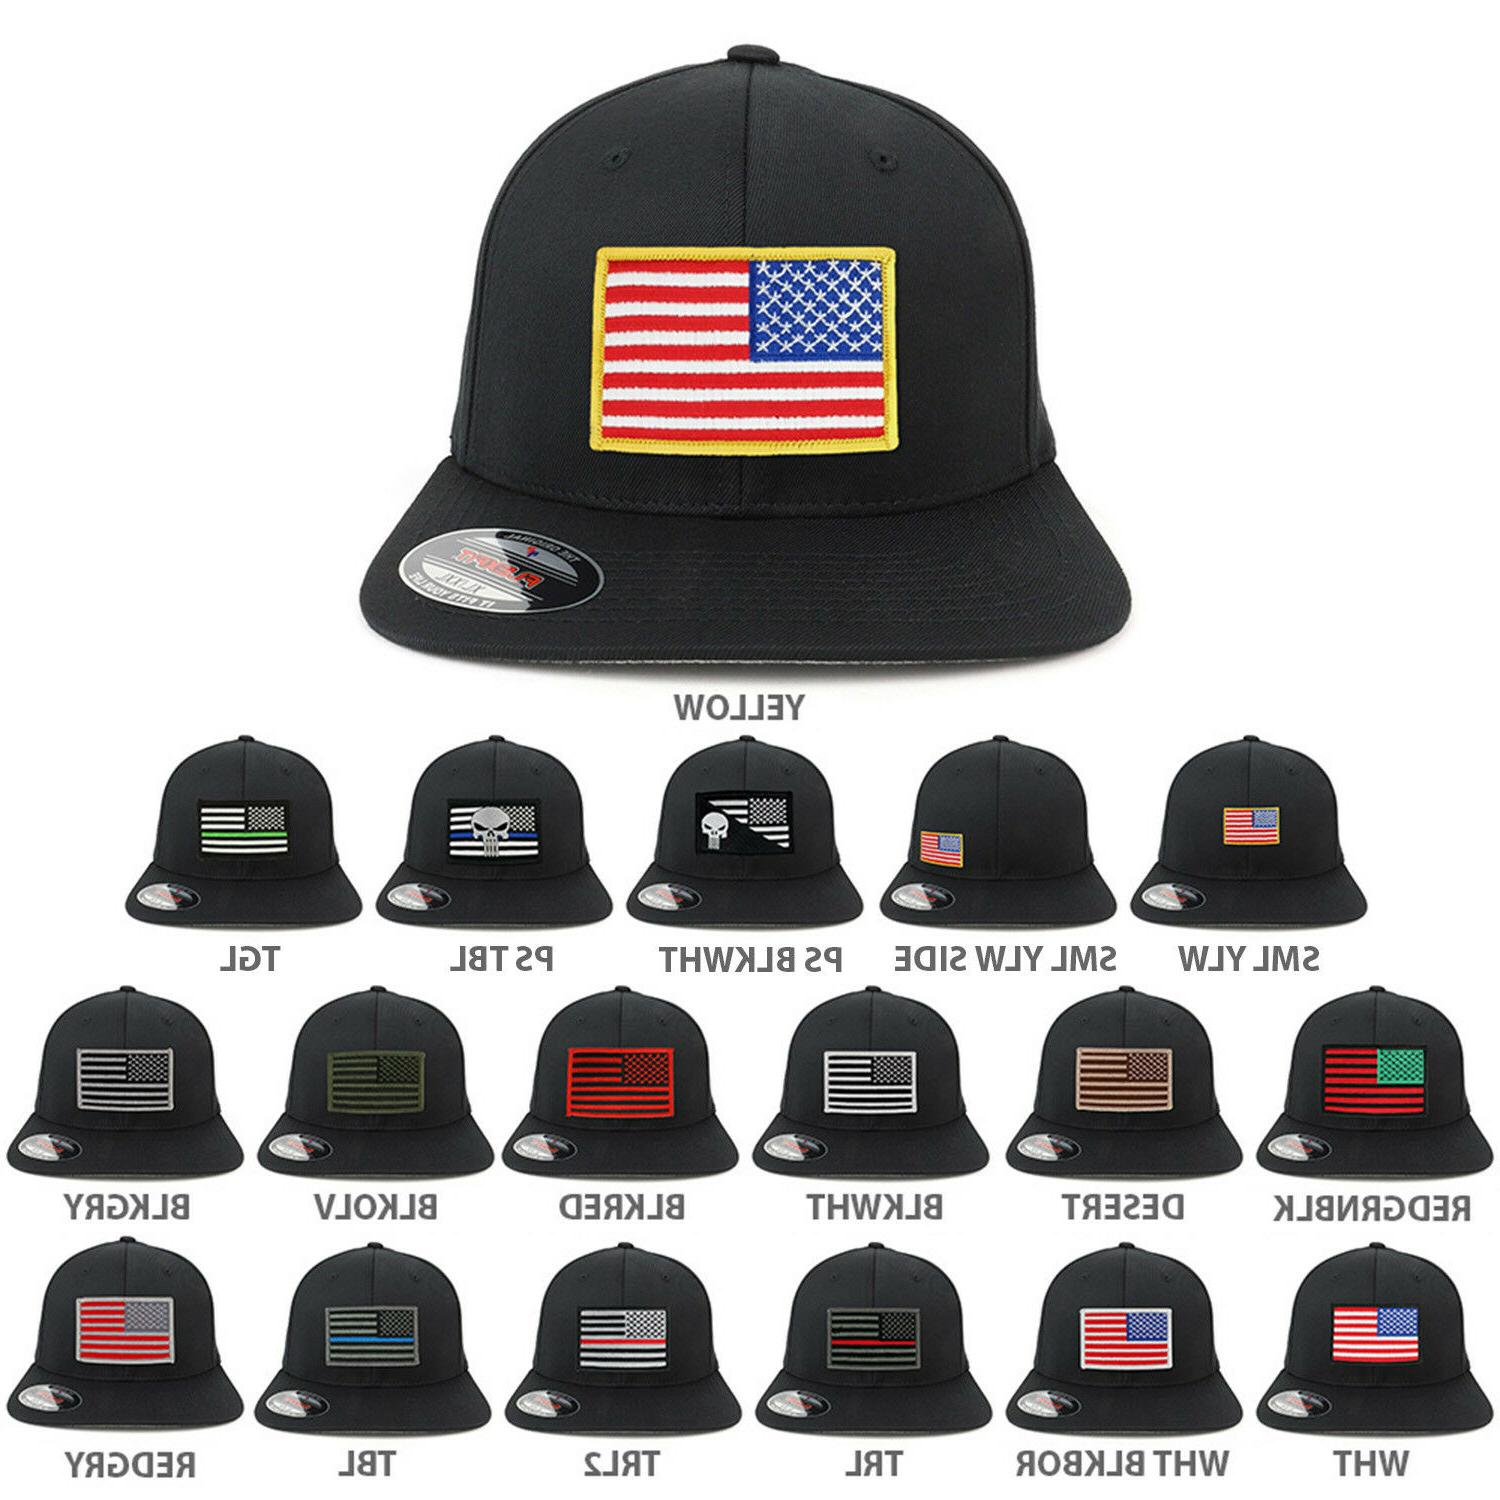 XXL USA American Flag Embroidered Iron On Patch Flexfit Cap